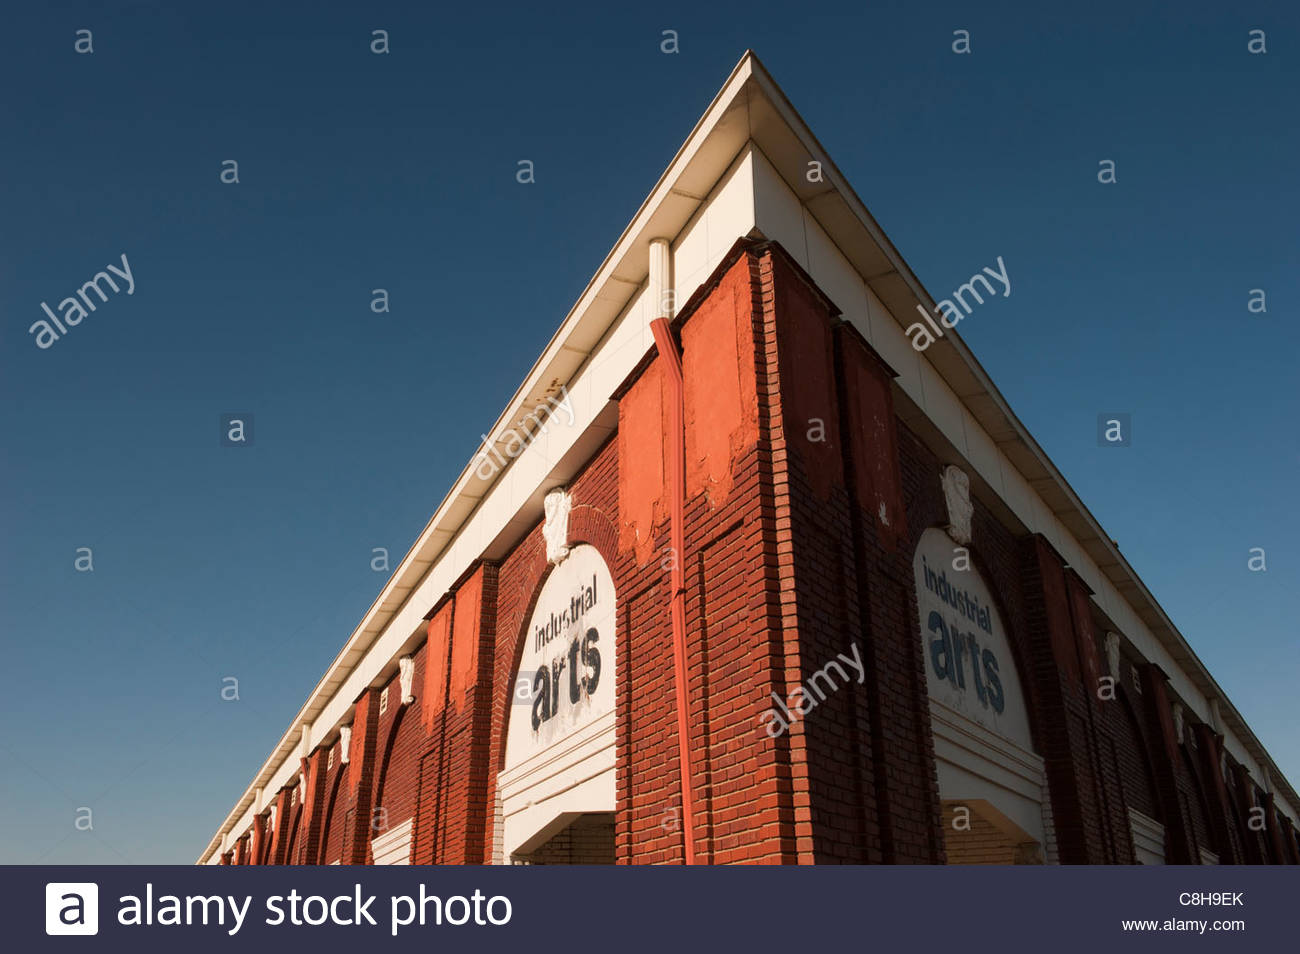 Exterior view of the Industrial Arts Building in Lincoln, NE. - Stock Image